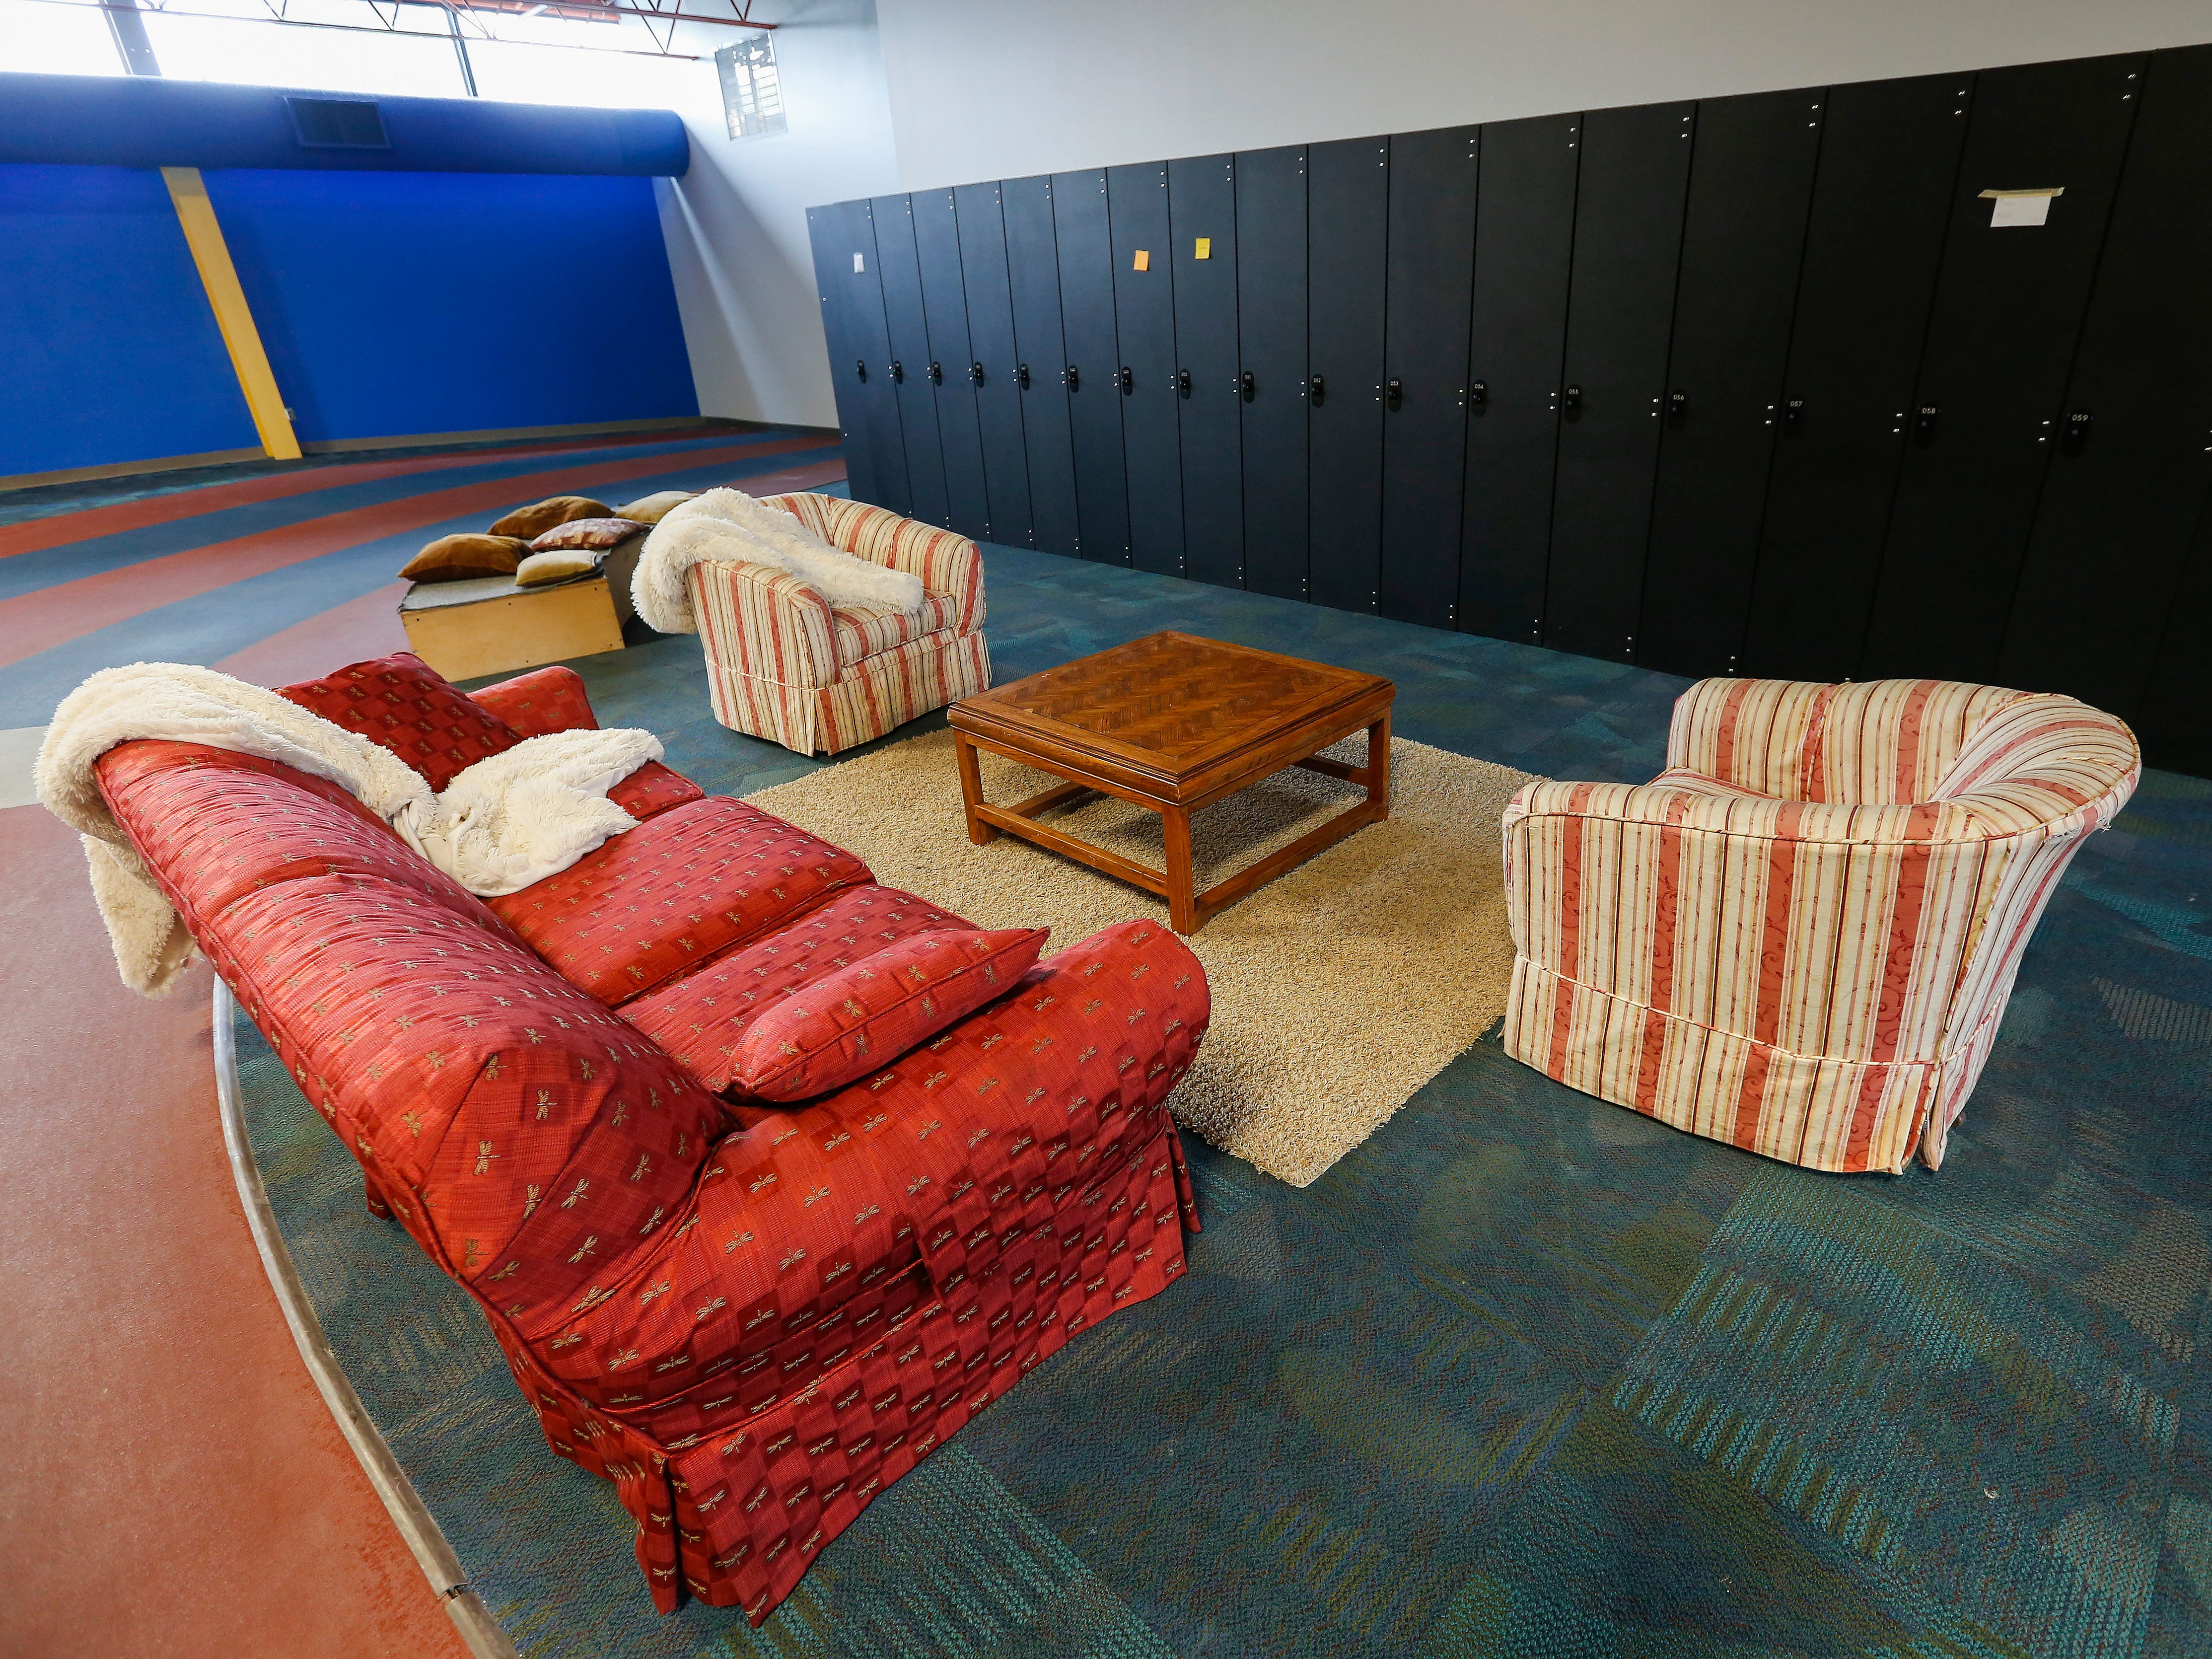 A seating area is located near lockers at the Summit Preparatory School's new location at 202 E. Walnut Lawn St.